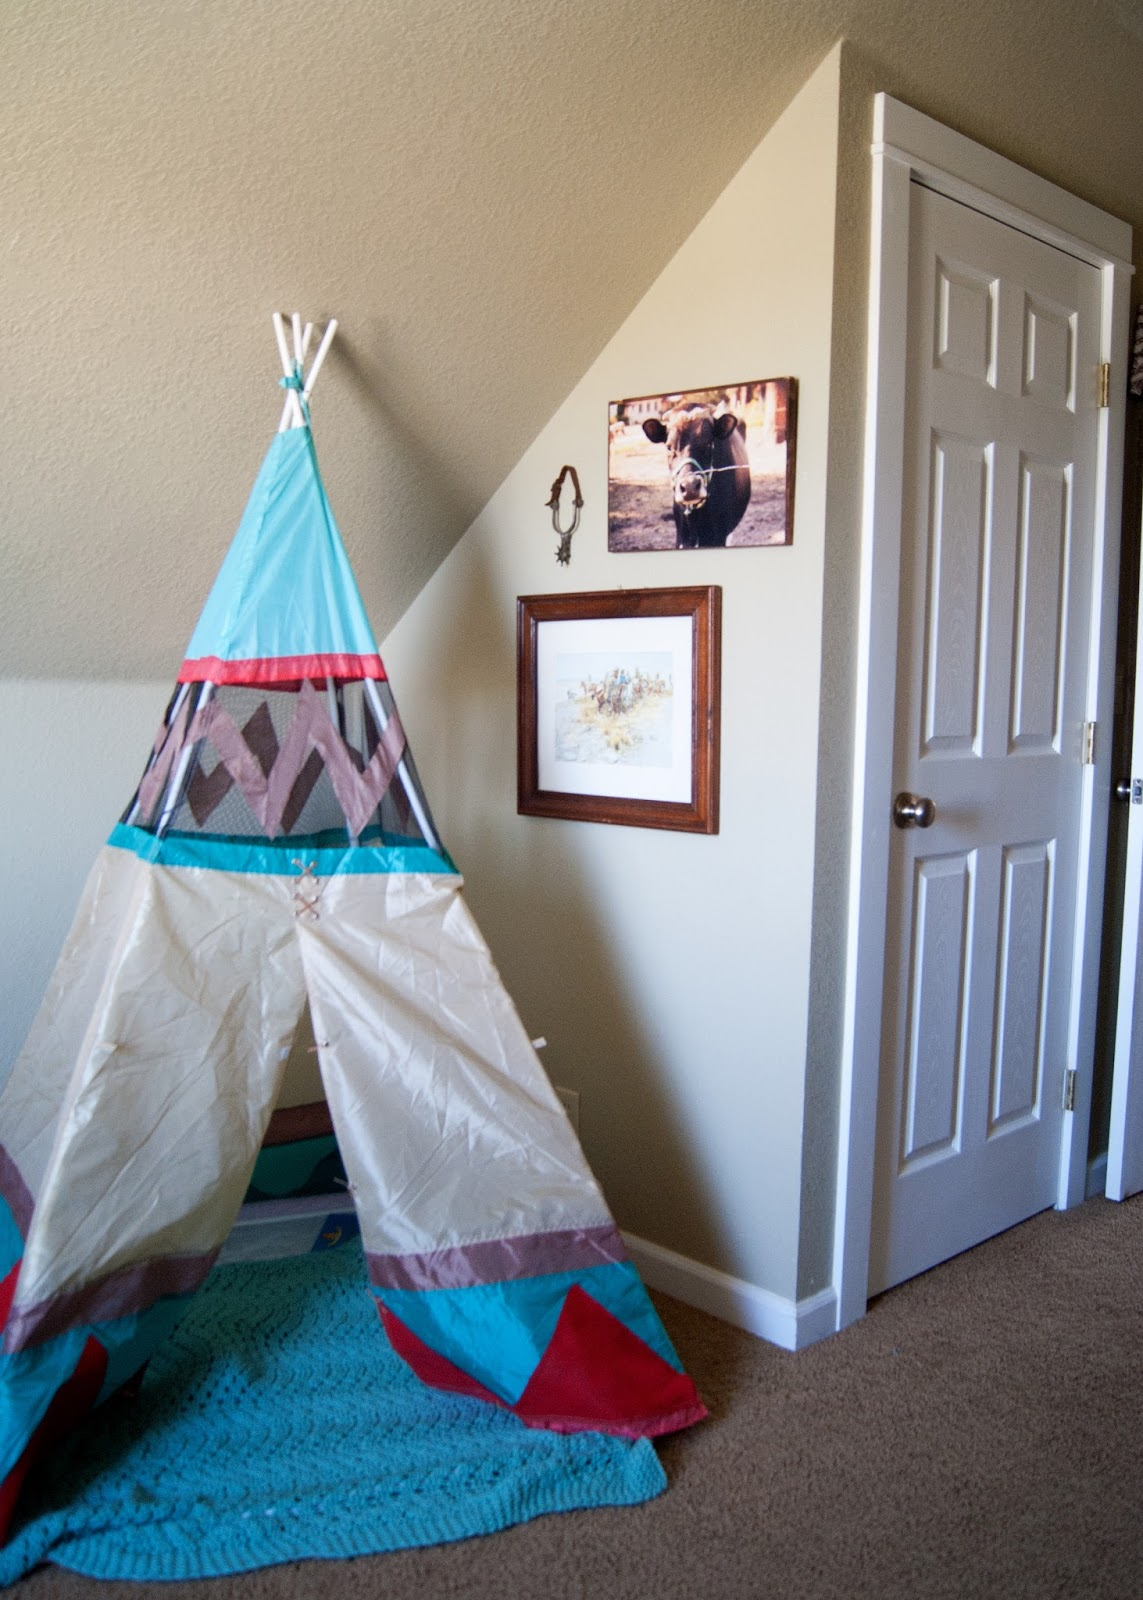 Tee pee and western art